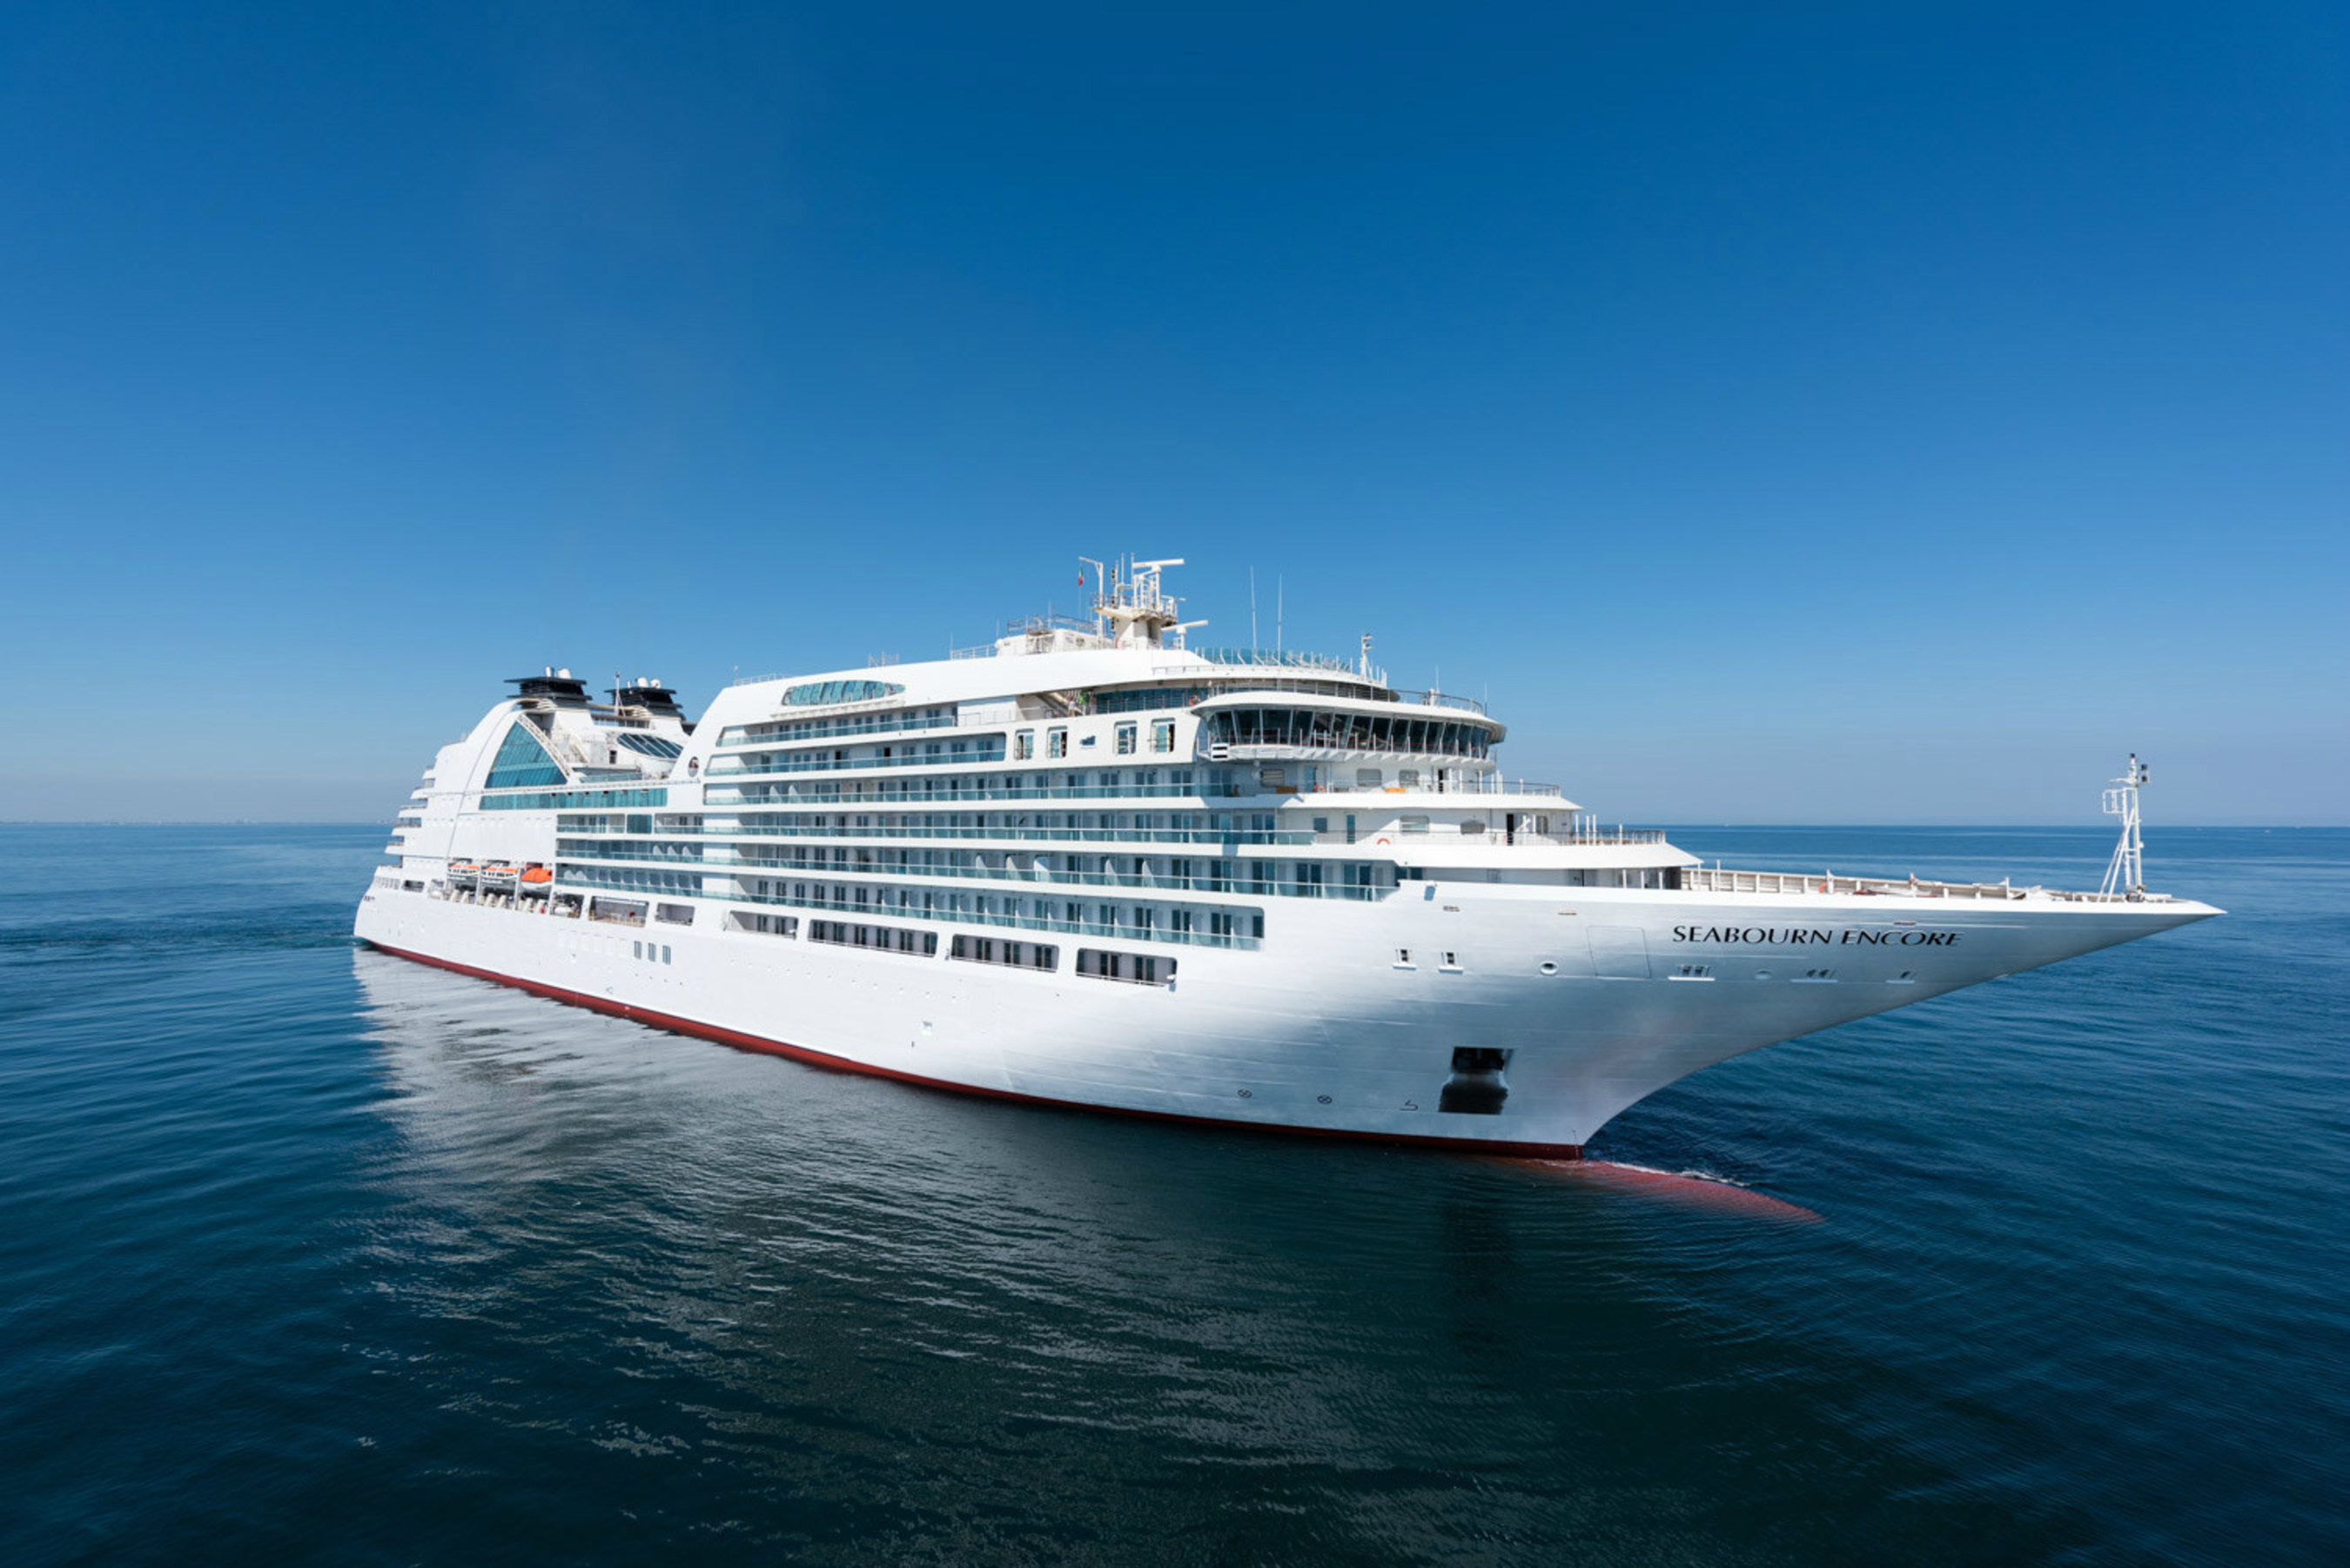 Seabourn Encore, seen here during its last round of sea trials in early November, is now the fourth ship in the ultra-luxury line's fleet after an official handover ceremony today in Marghera, Italy.